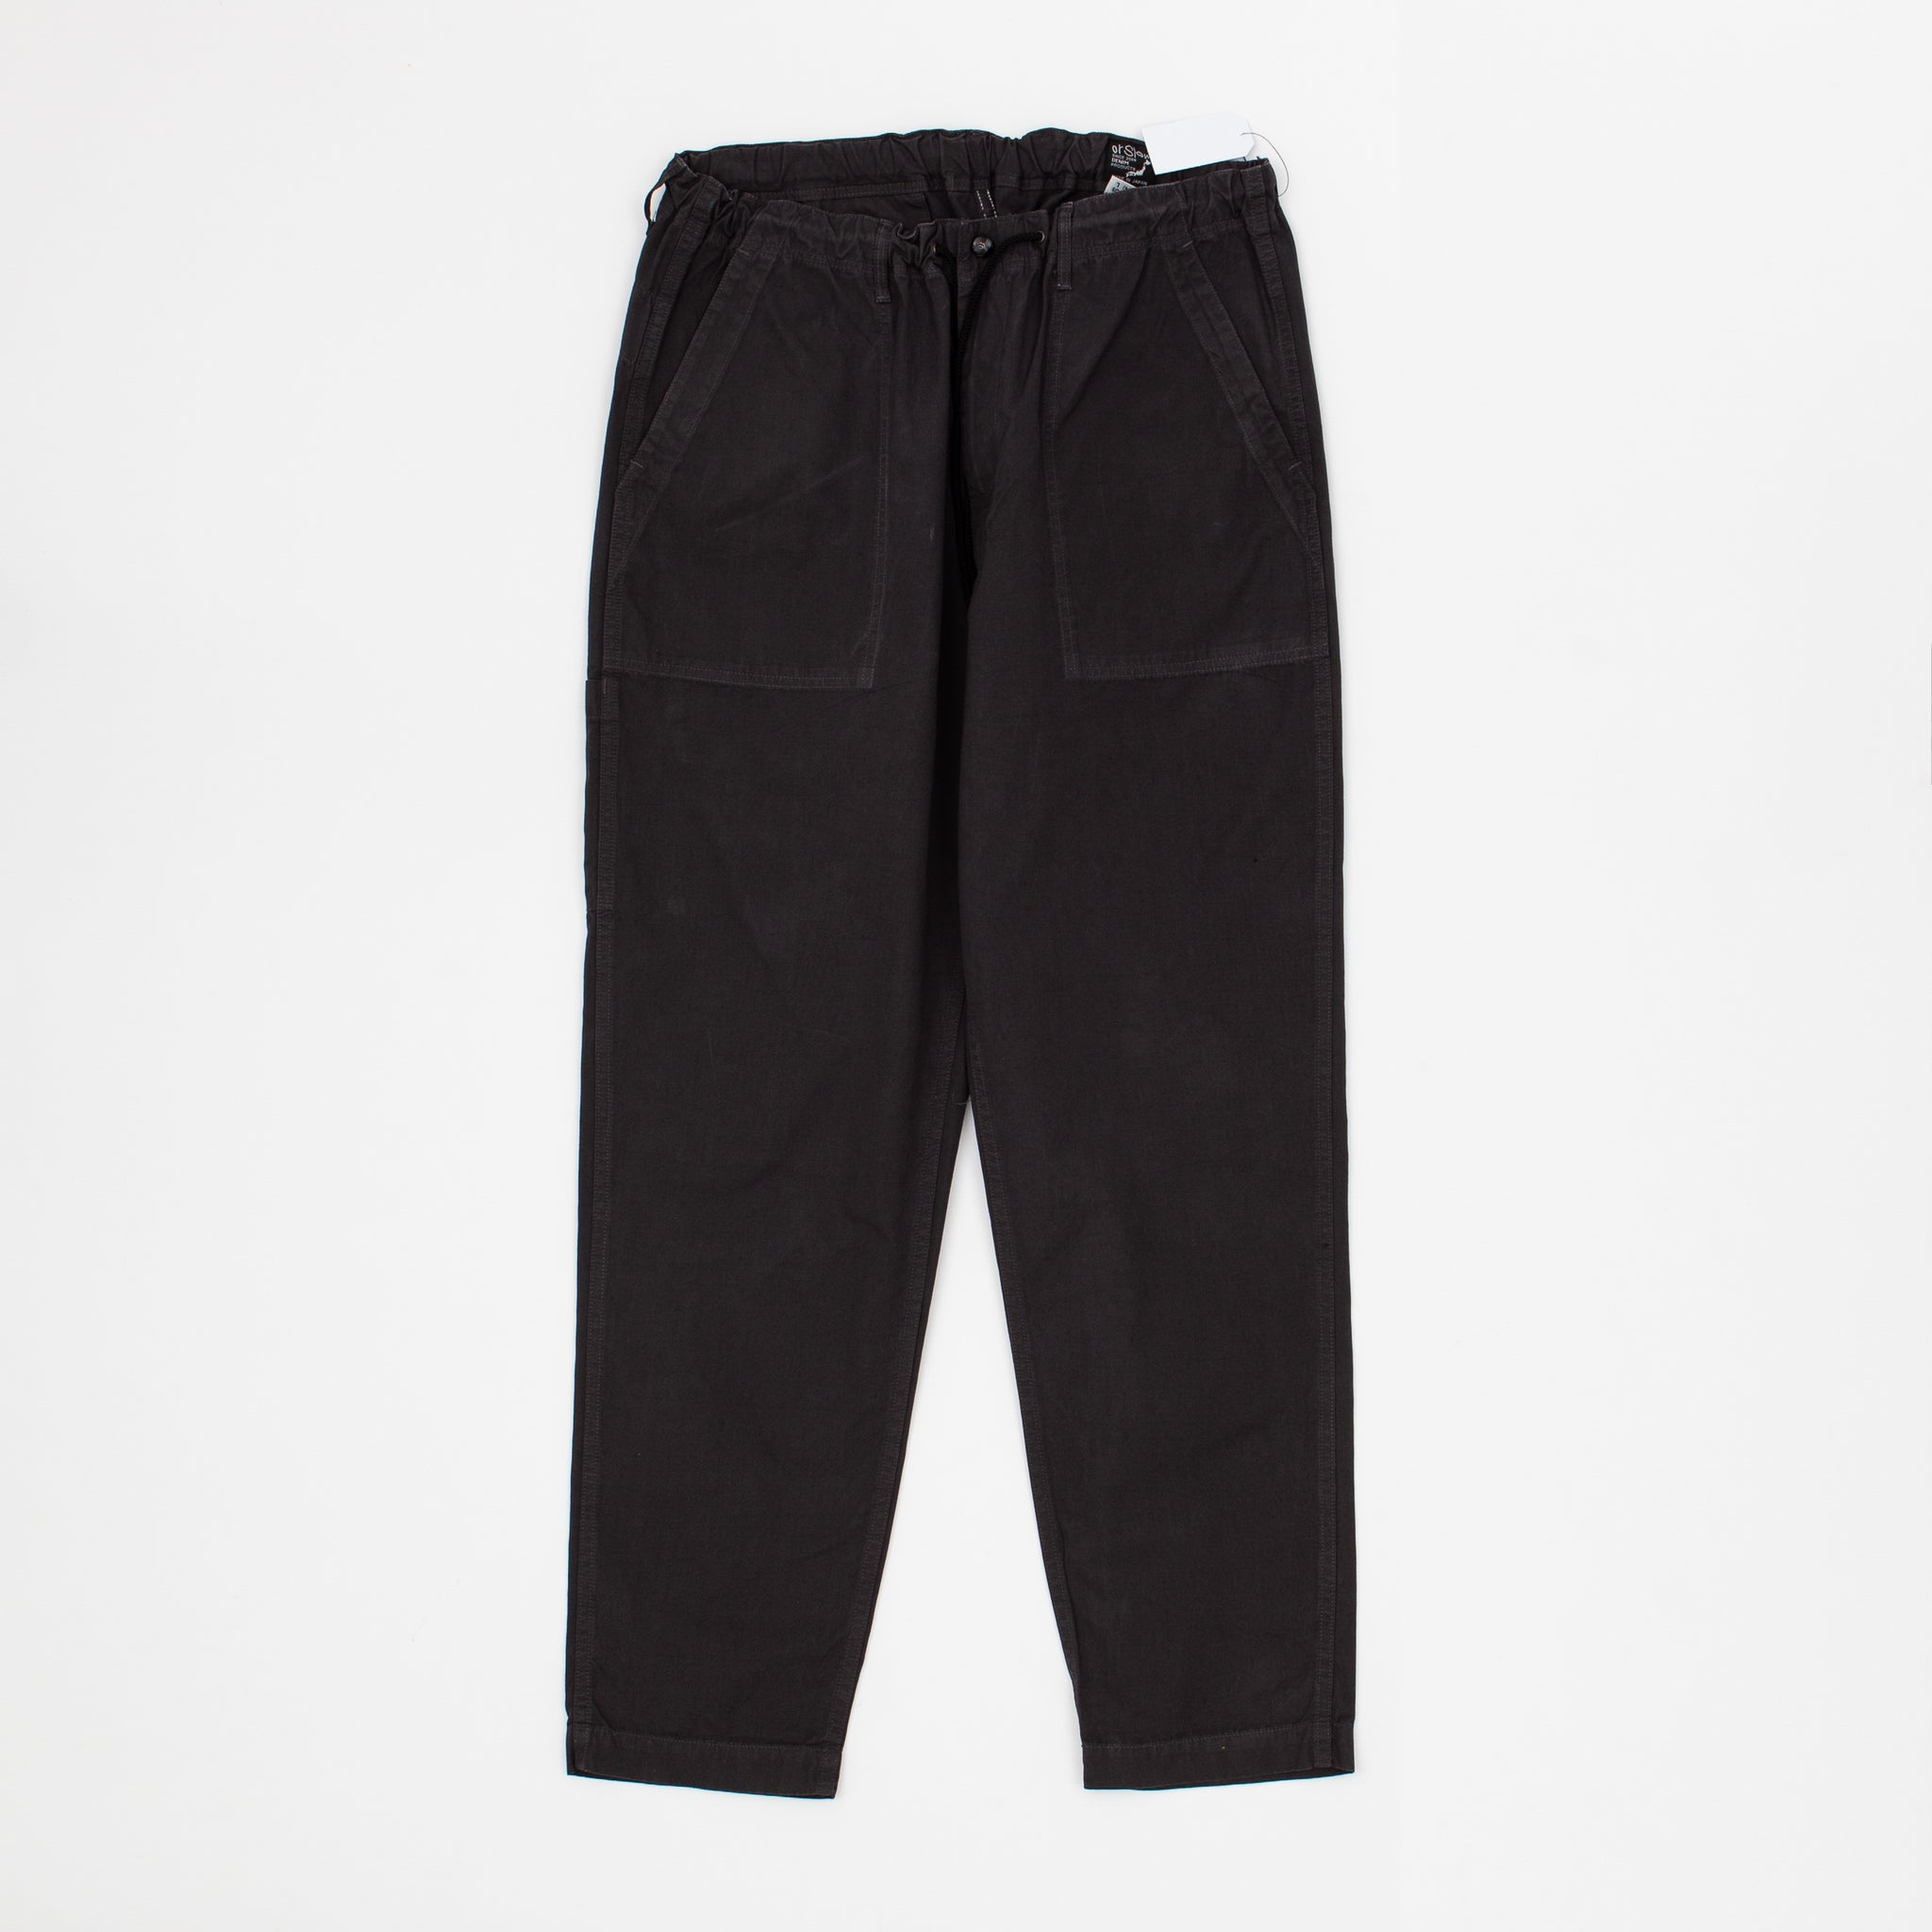 New York Trousers